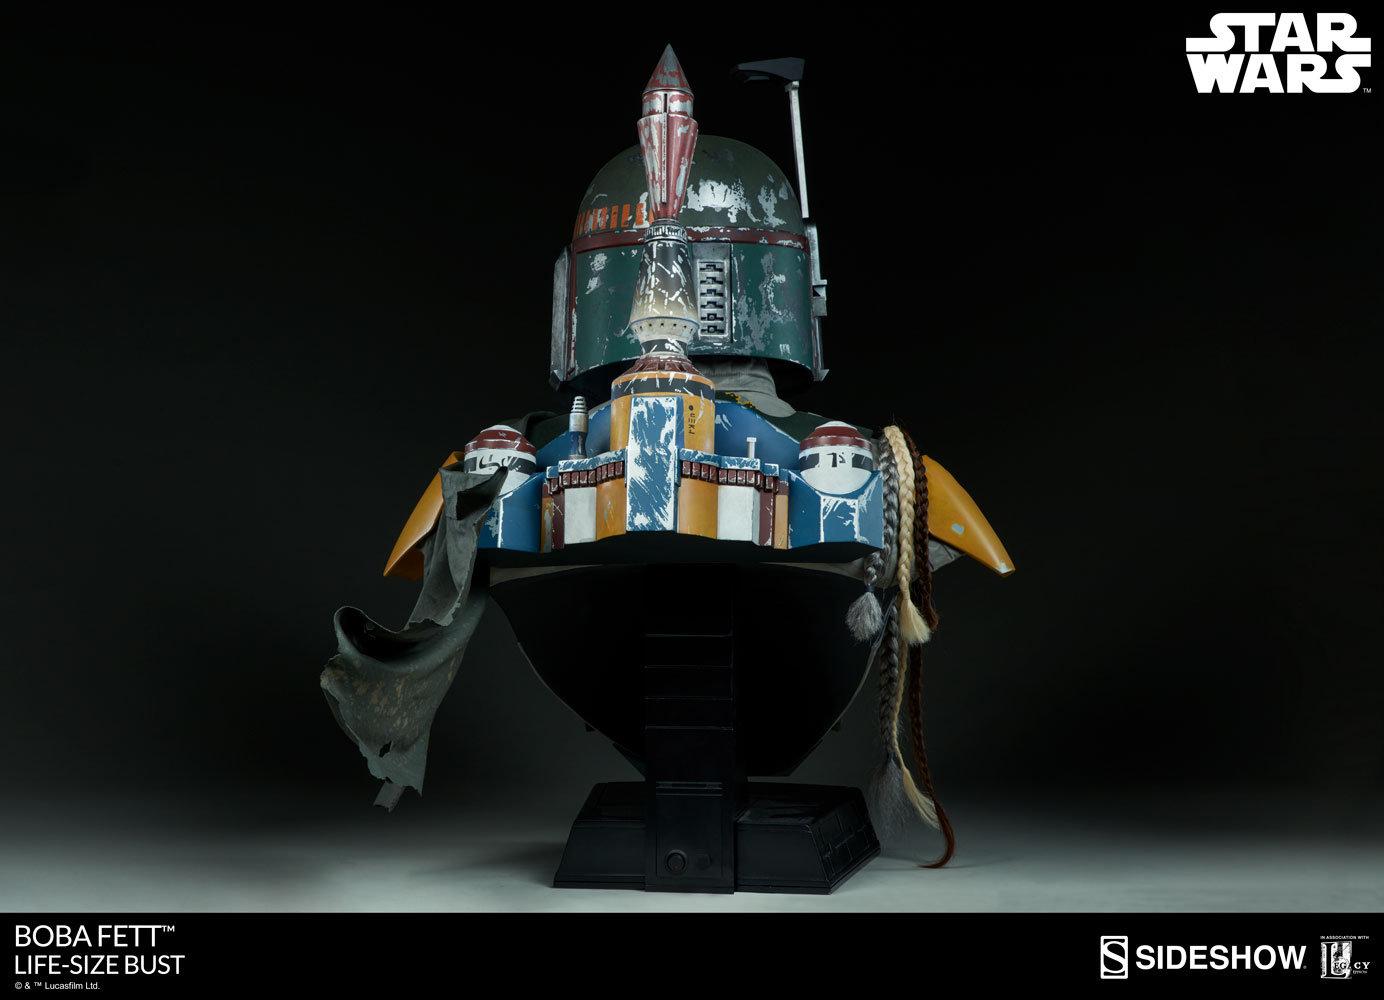 SW-Boba-Gett-life-size-bust-07